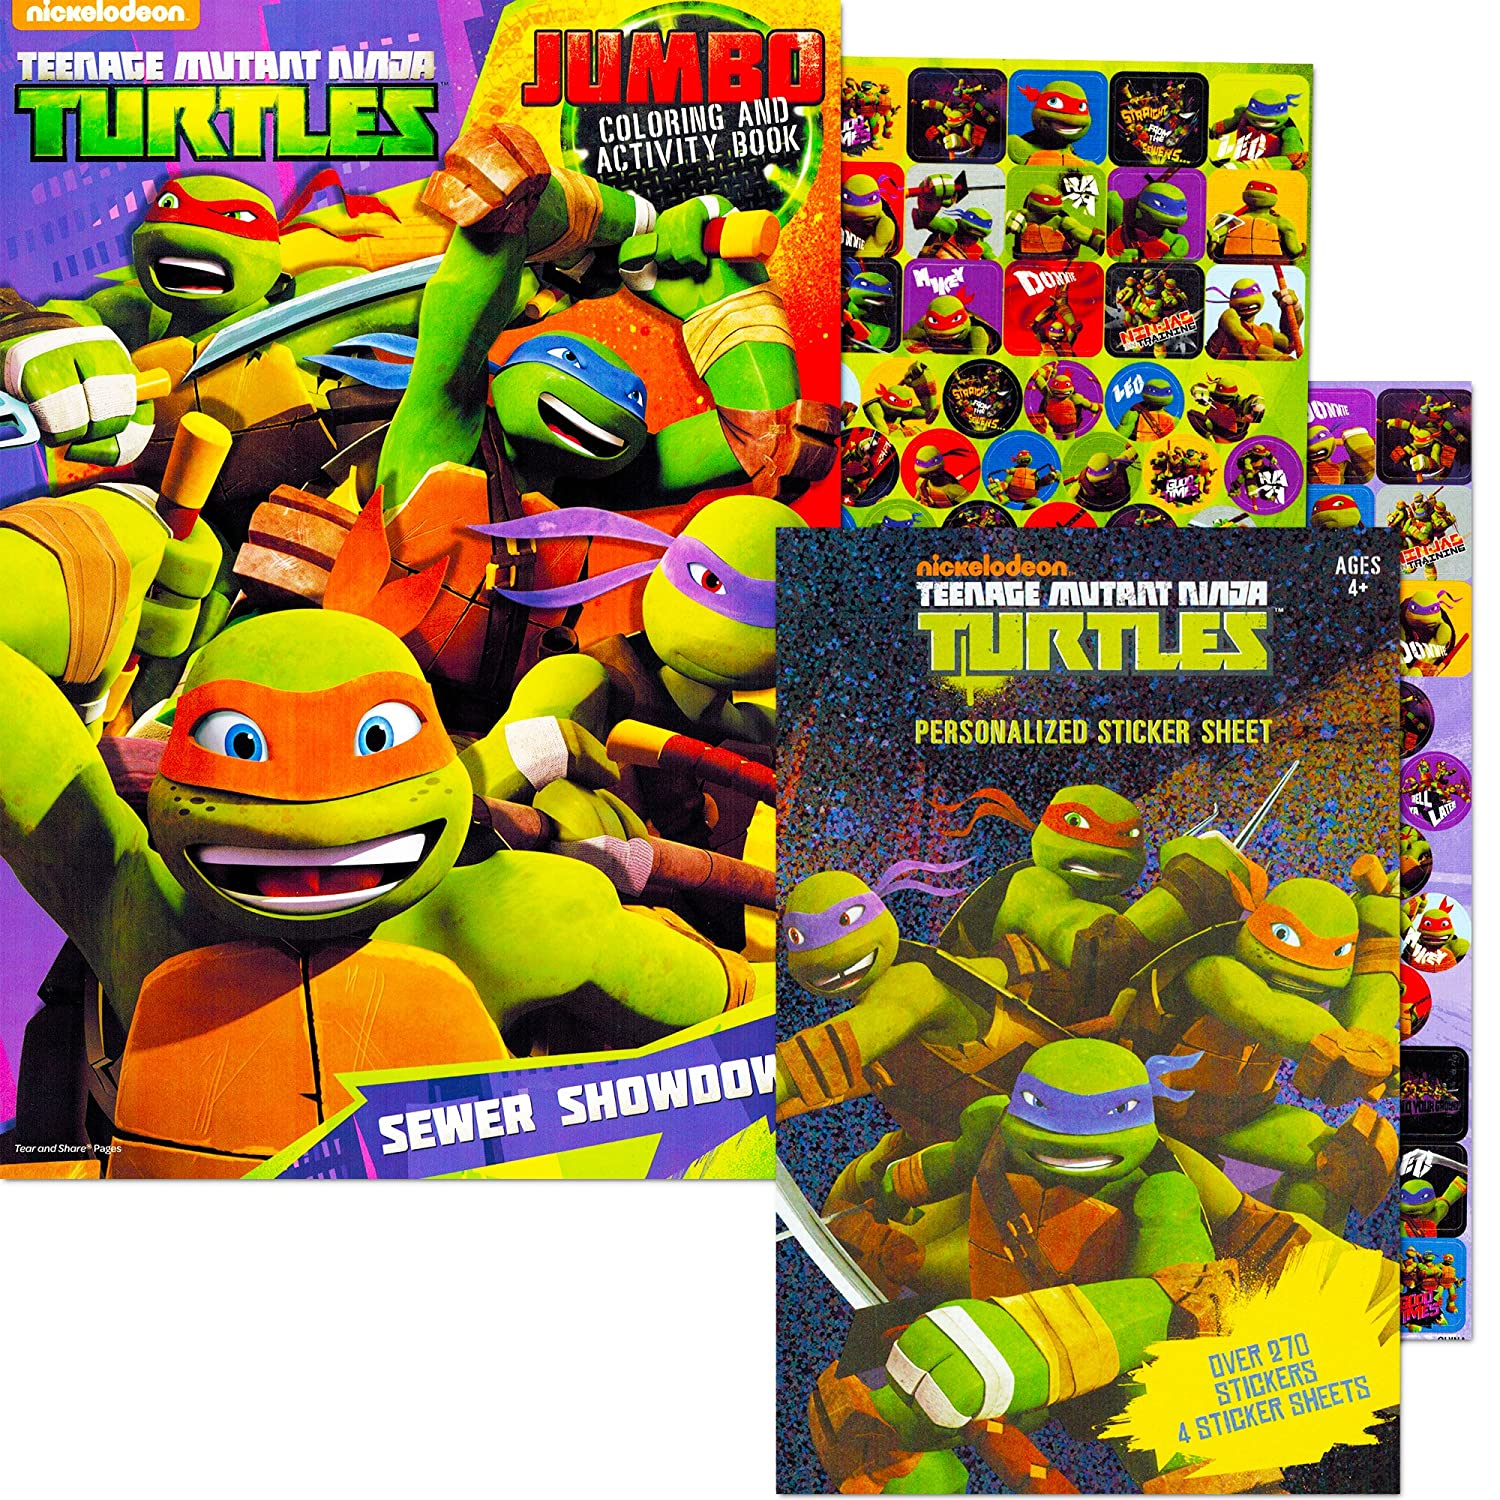 Teenage Mutant Ninja Turtles Coloring and Activity Book with Stickers (TMNT)